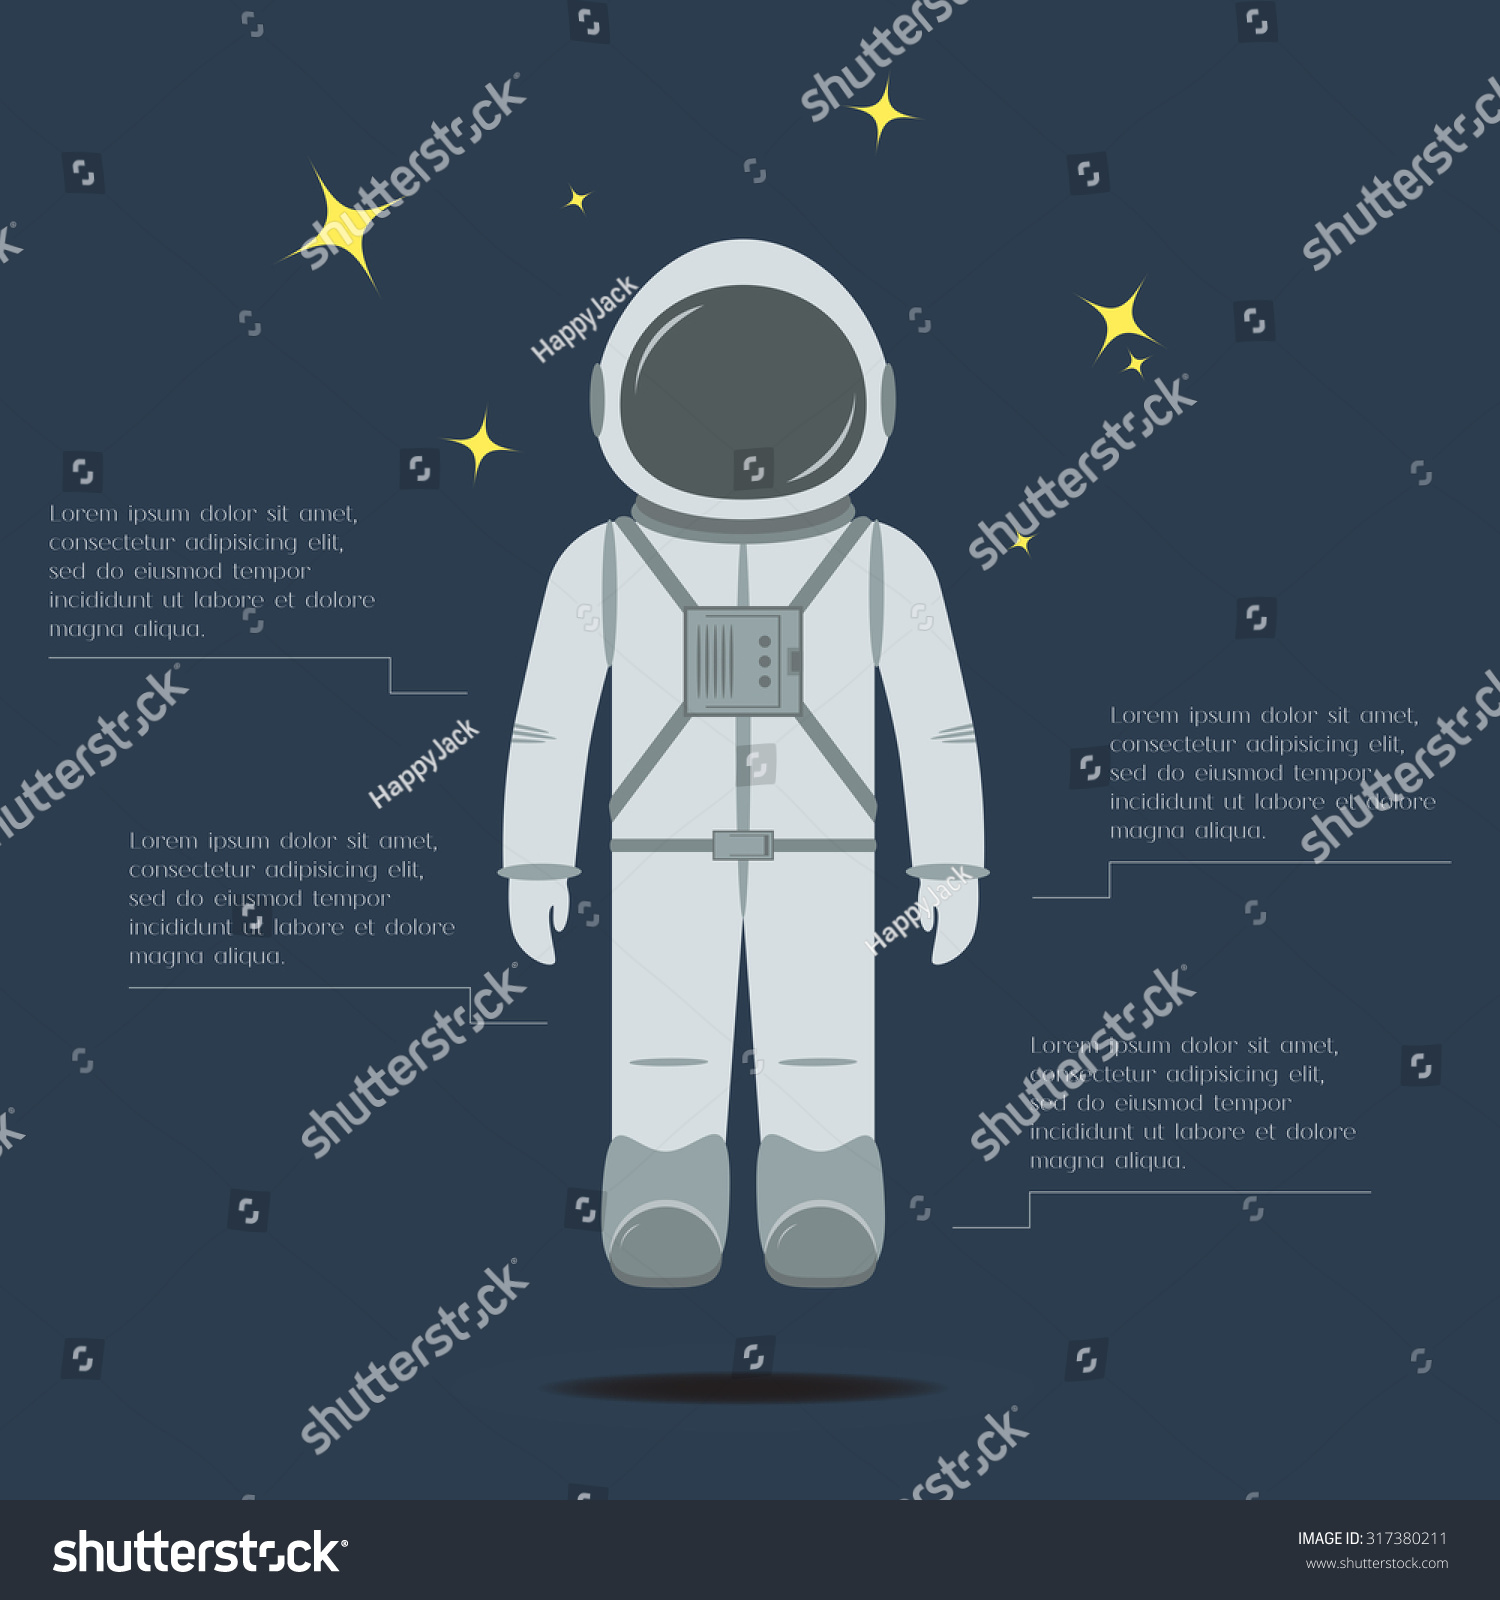 astronaut design - photo #42